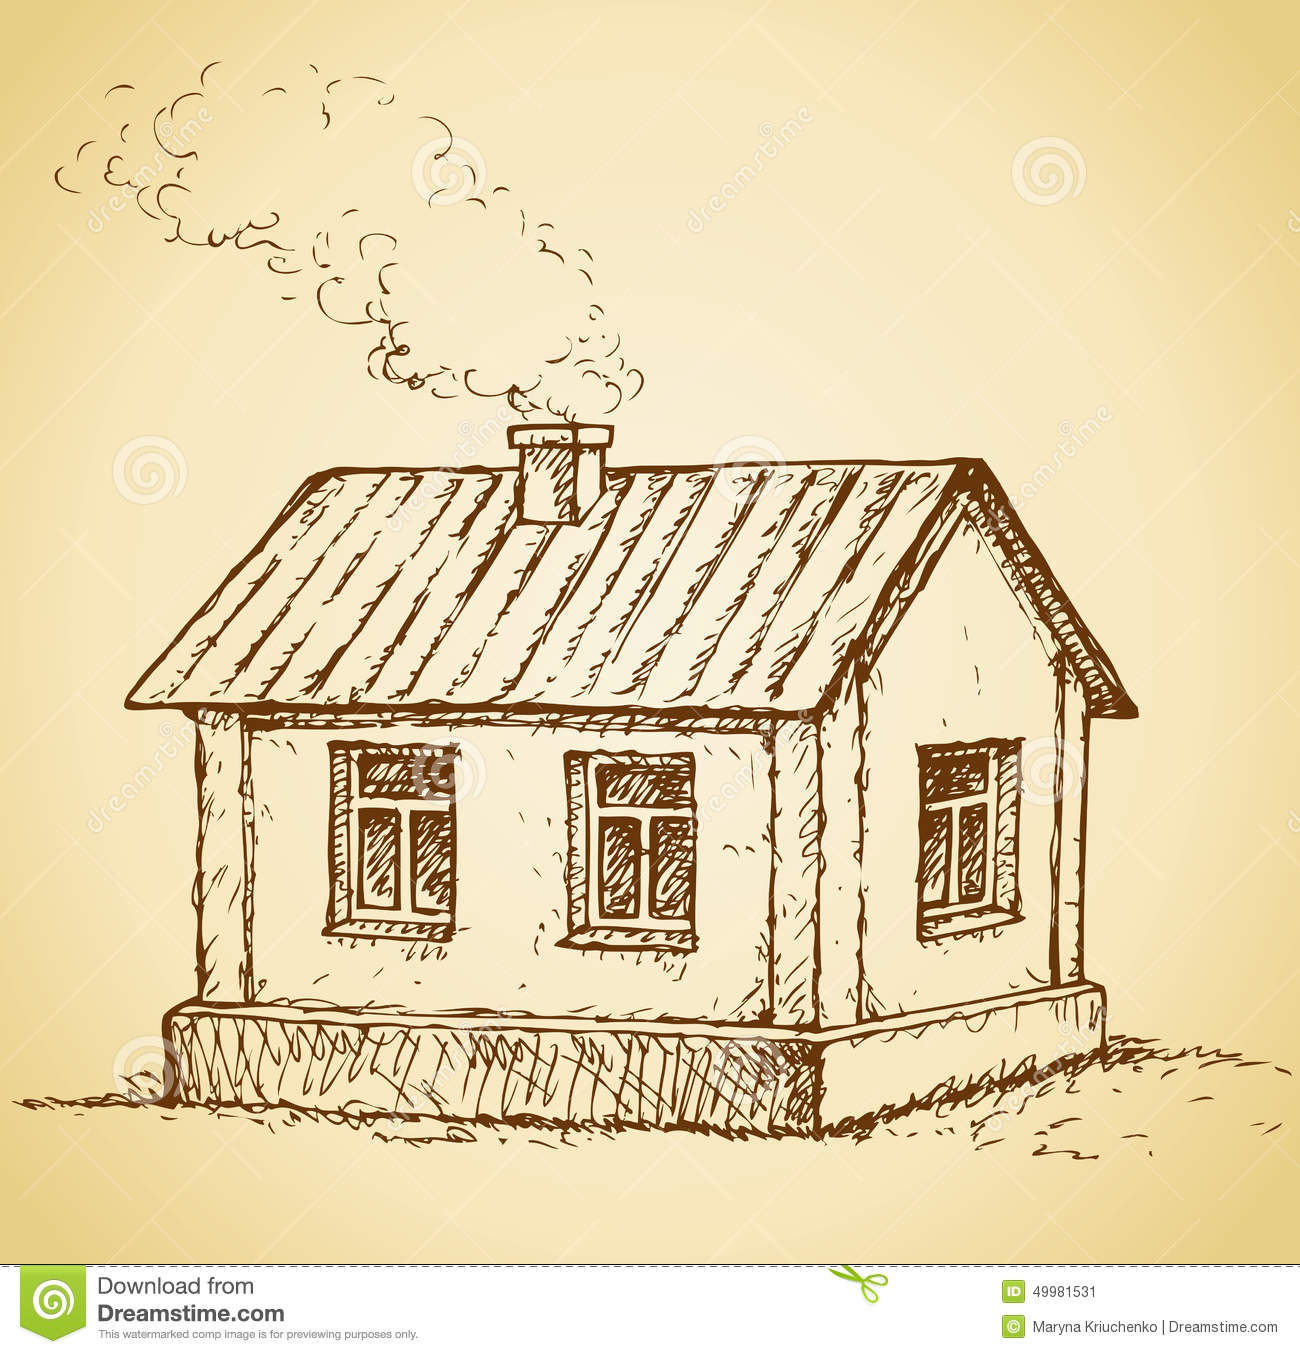 Cozy little house vector sketch stock vector image for How to draw a cute house